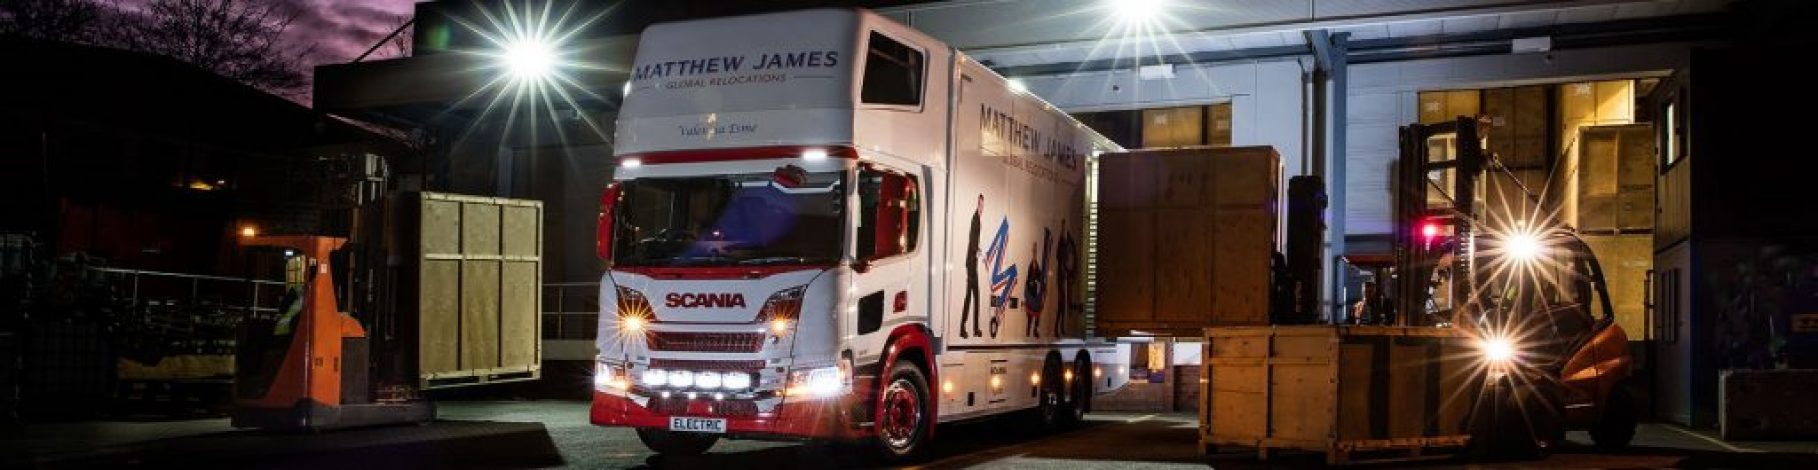 Matthew James Lorry at Depot Night